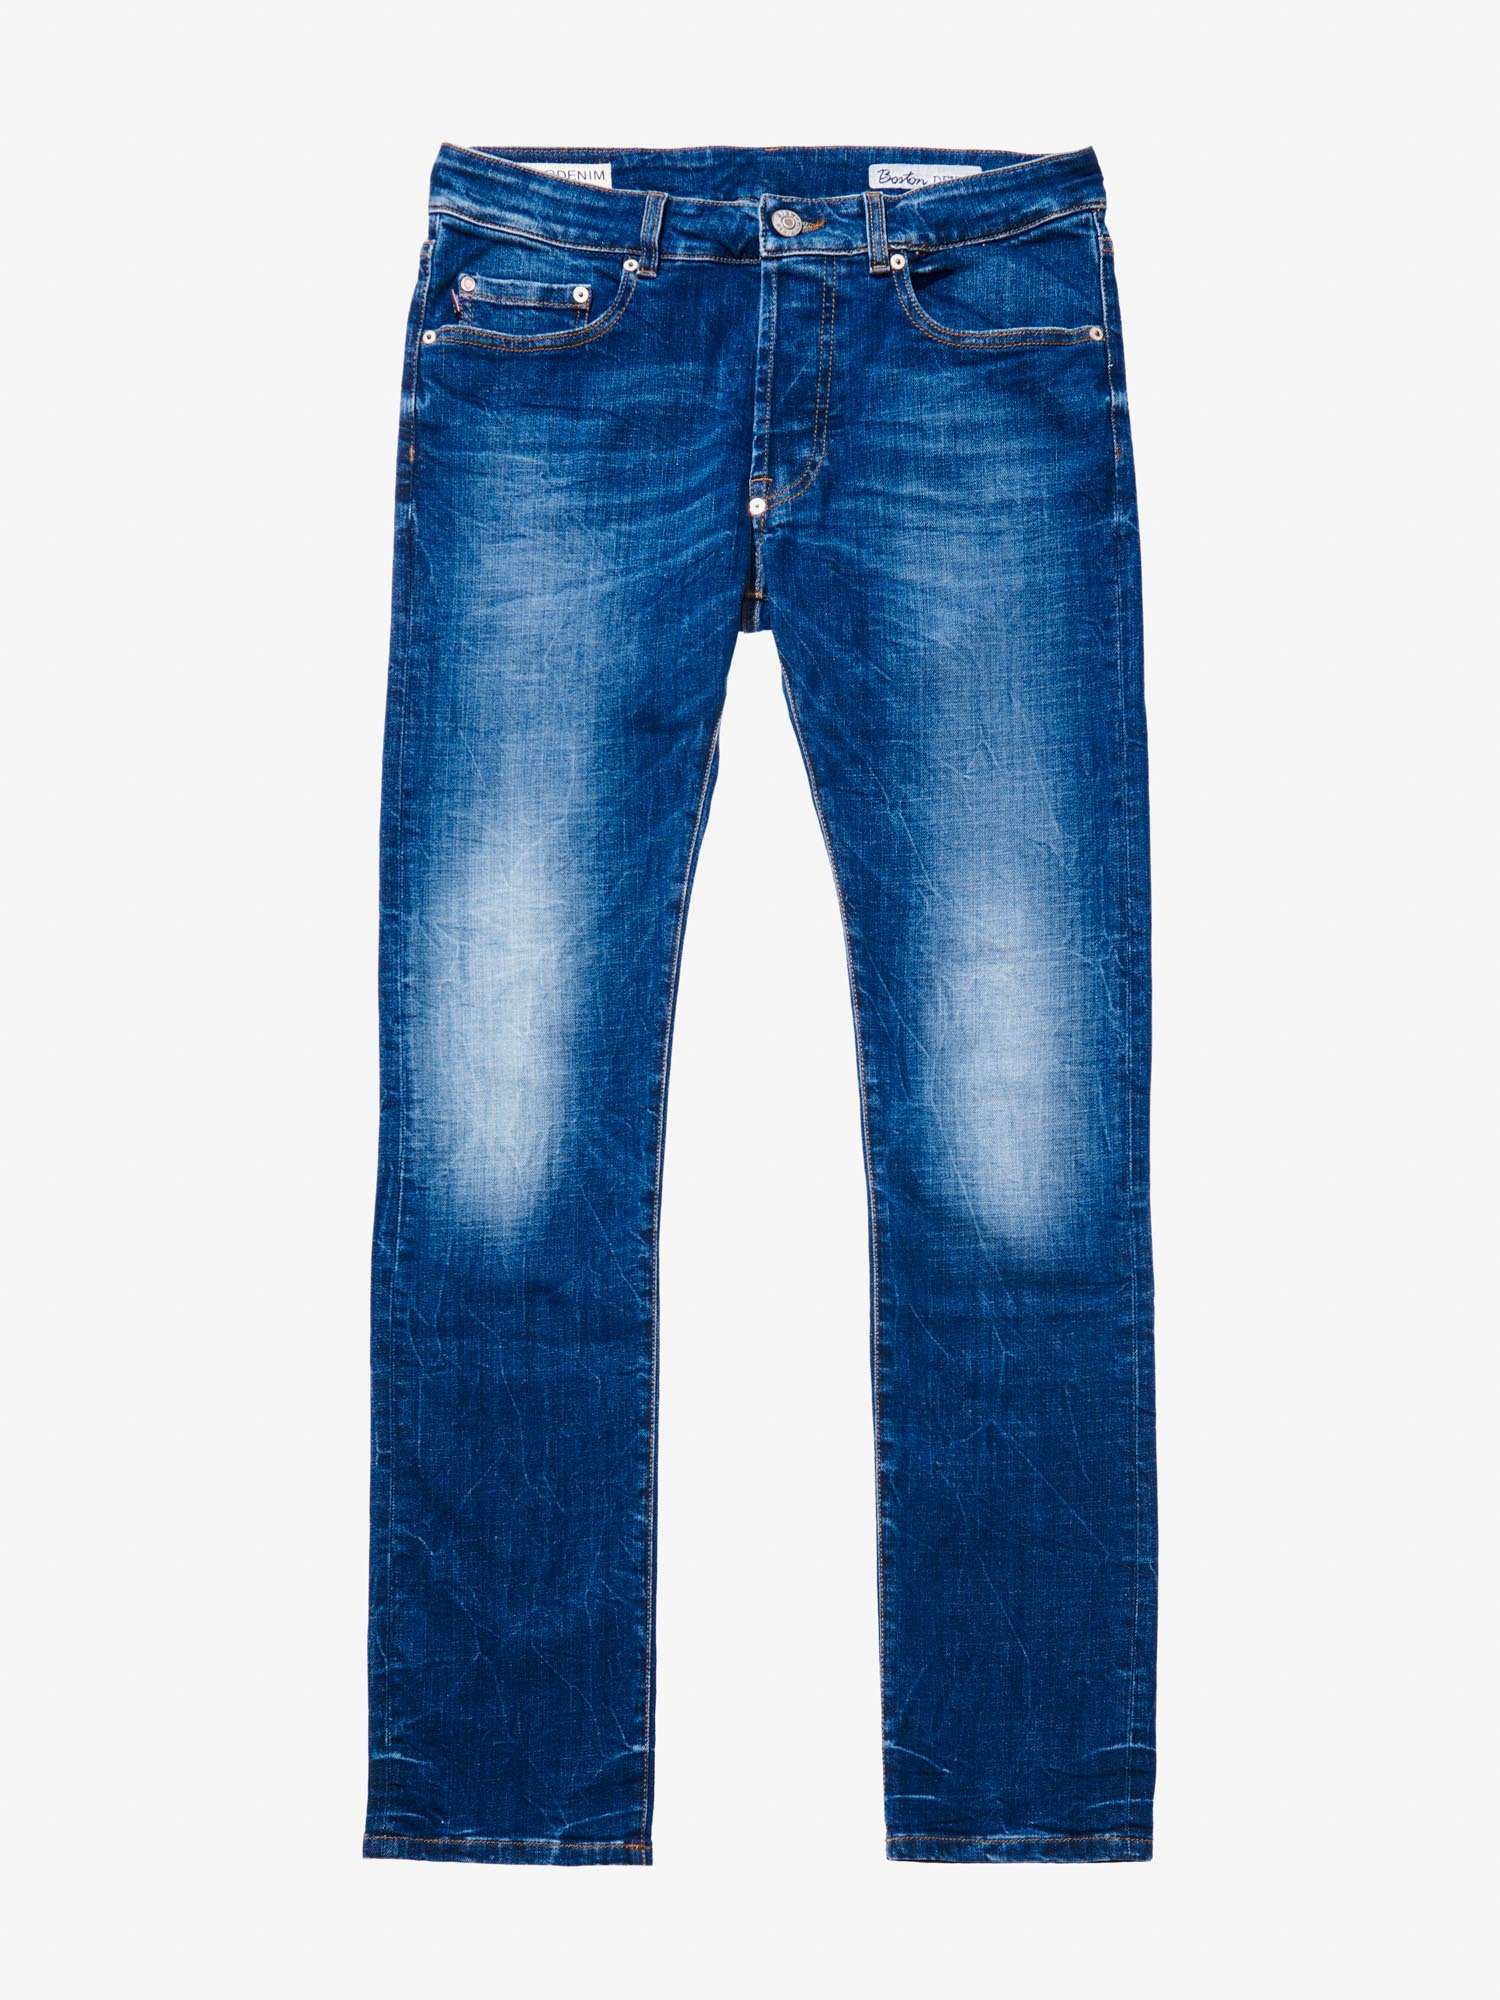 DENIMHOSE BOOT CUT STONE WASHED - Blauer